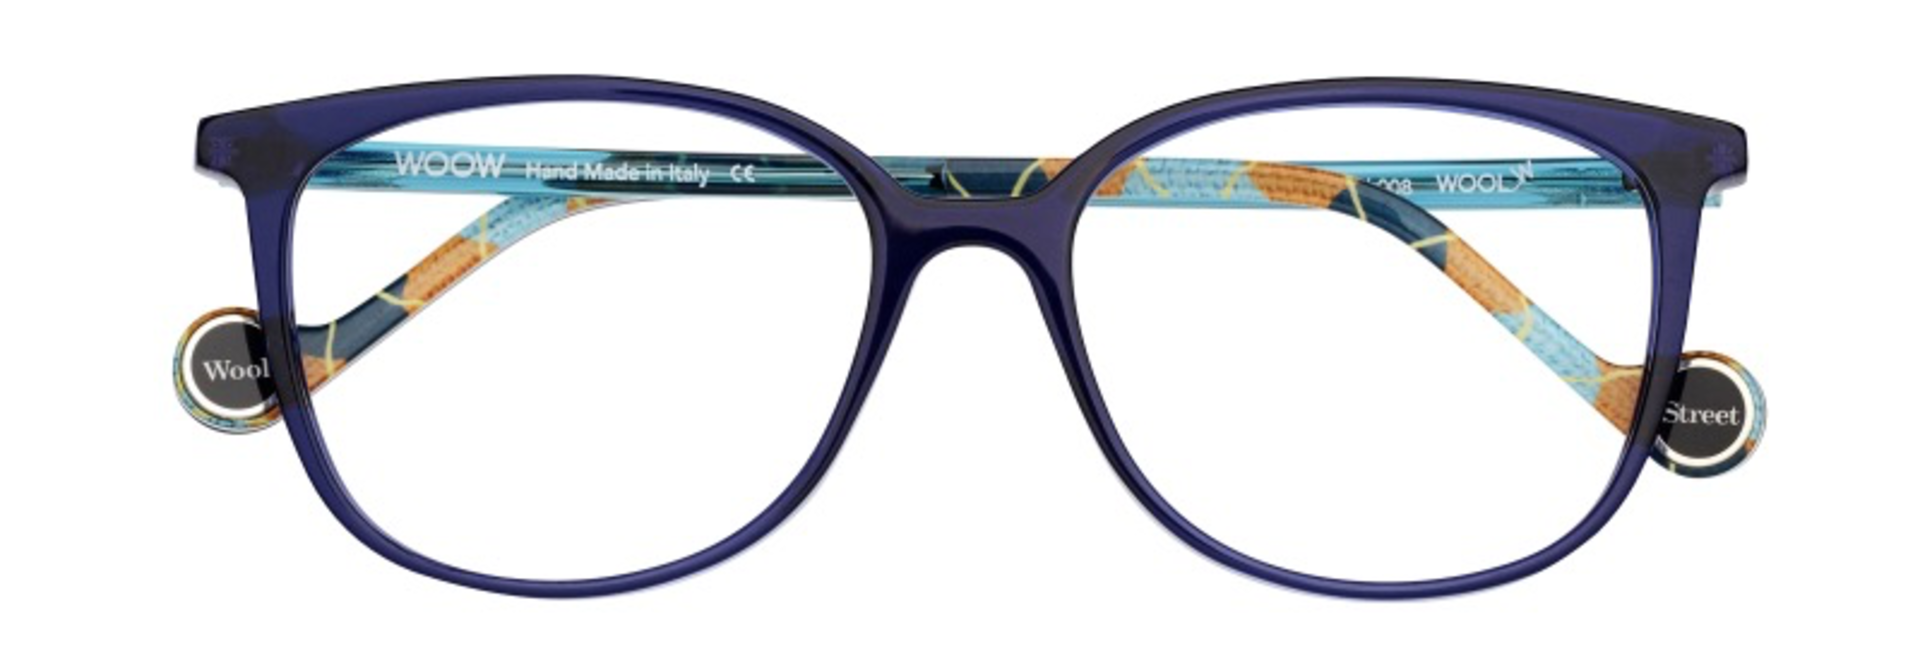 Wool Street 2 by Woow Eyewear